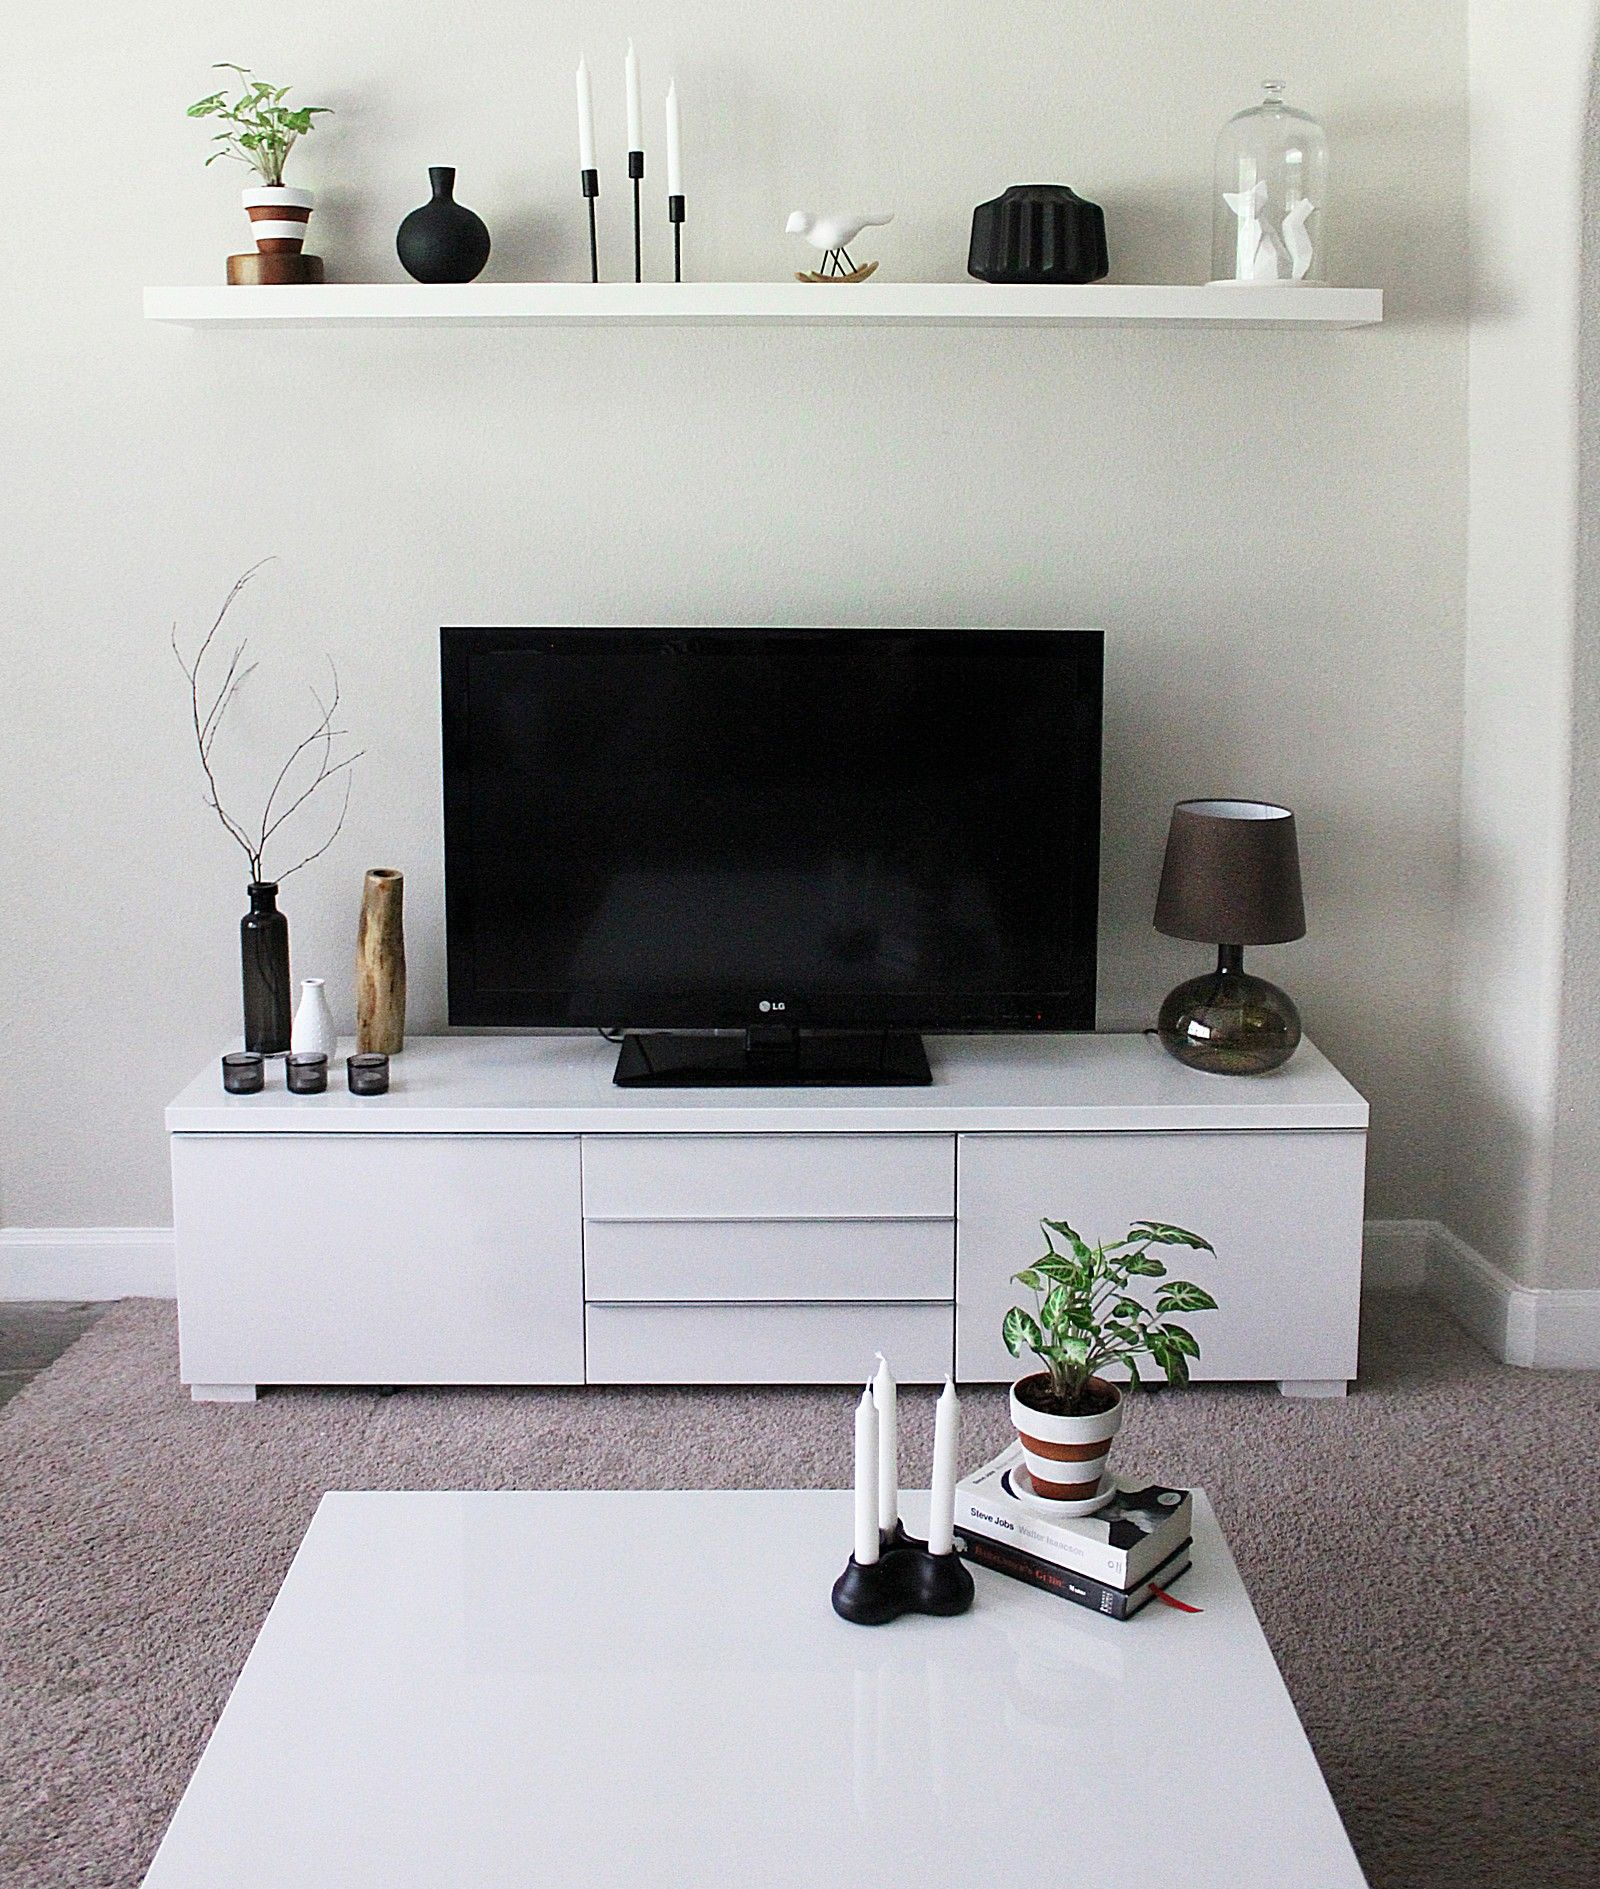 Minimalist Tv Stand And Cabinet Ikea Besta  Interiors Design Awesome Living Room Design With Tv Design Decoration